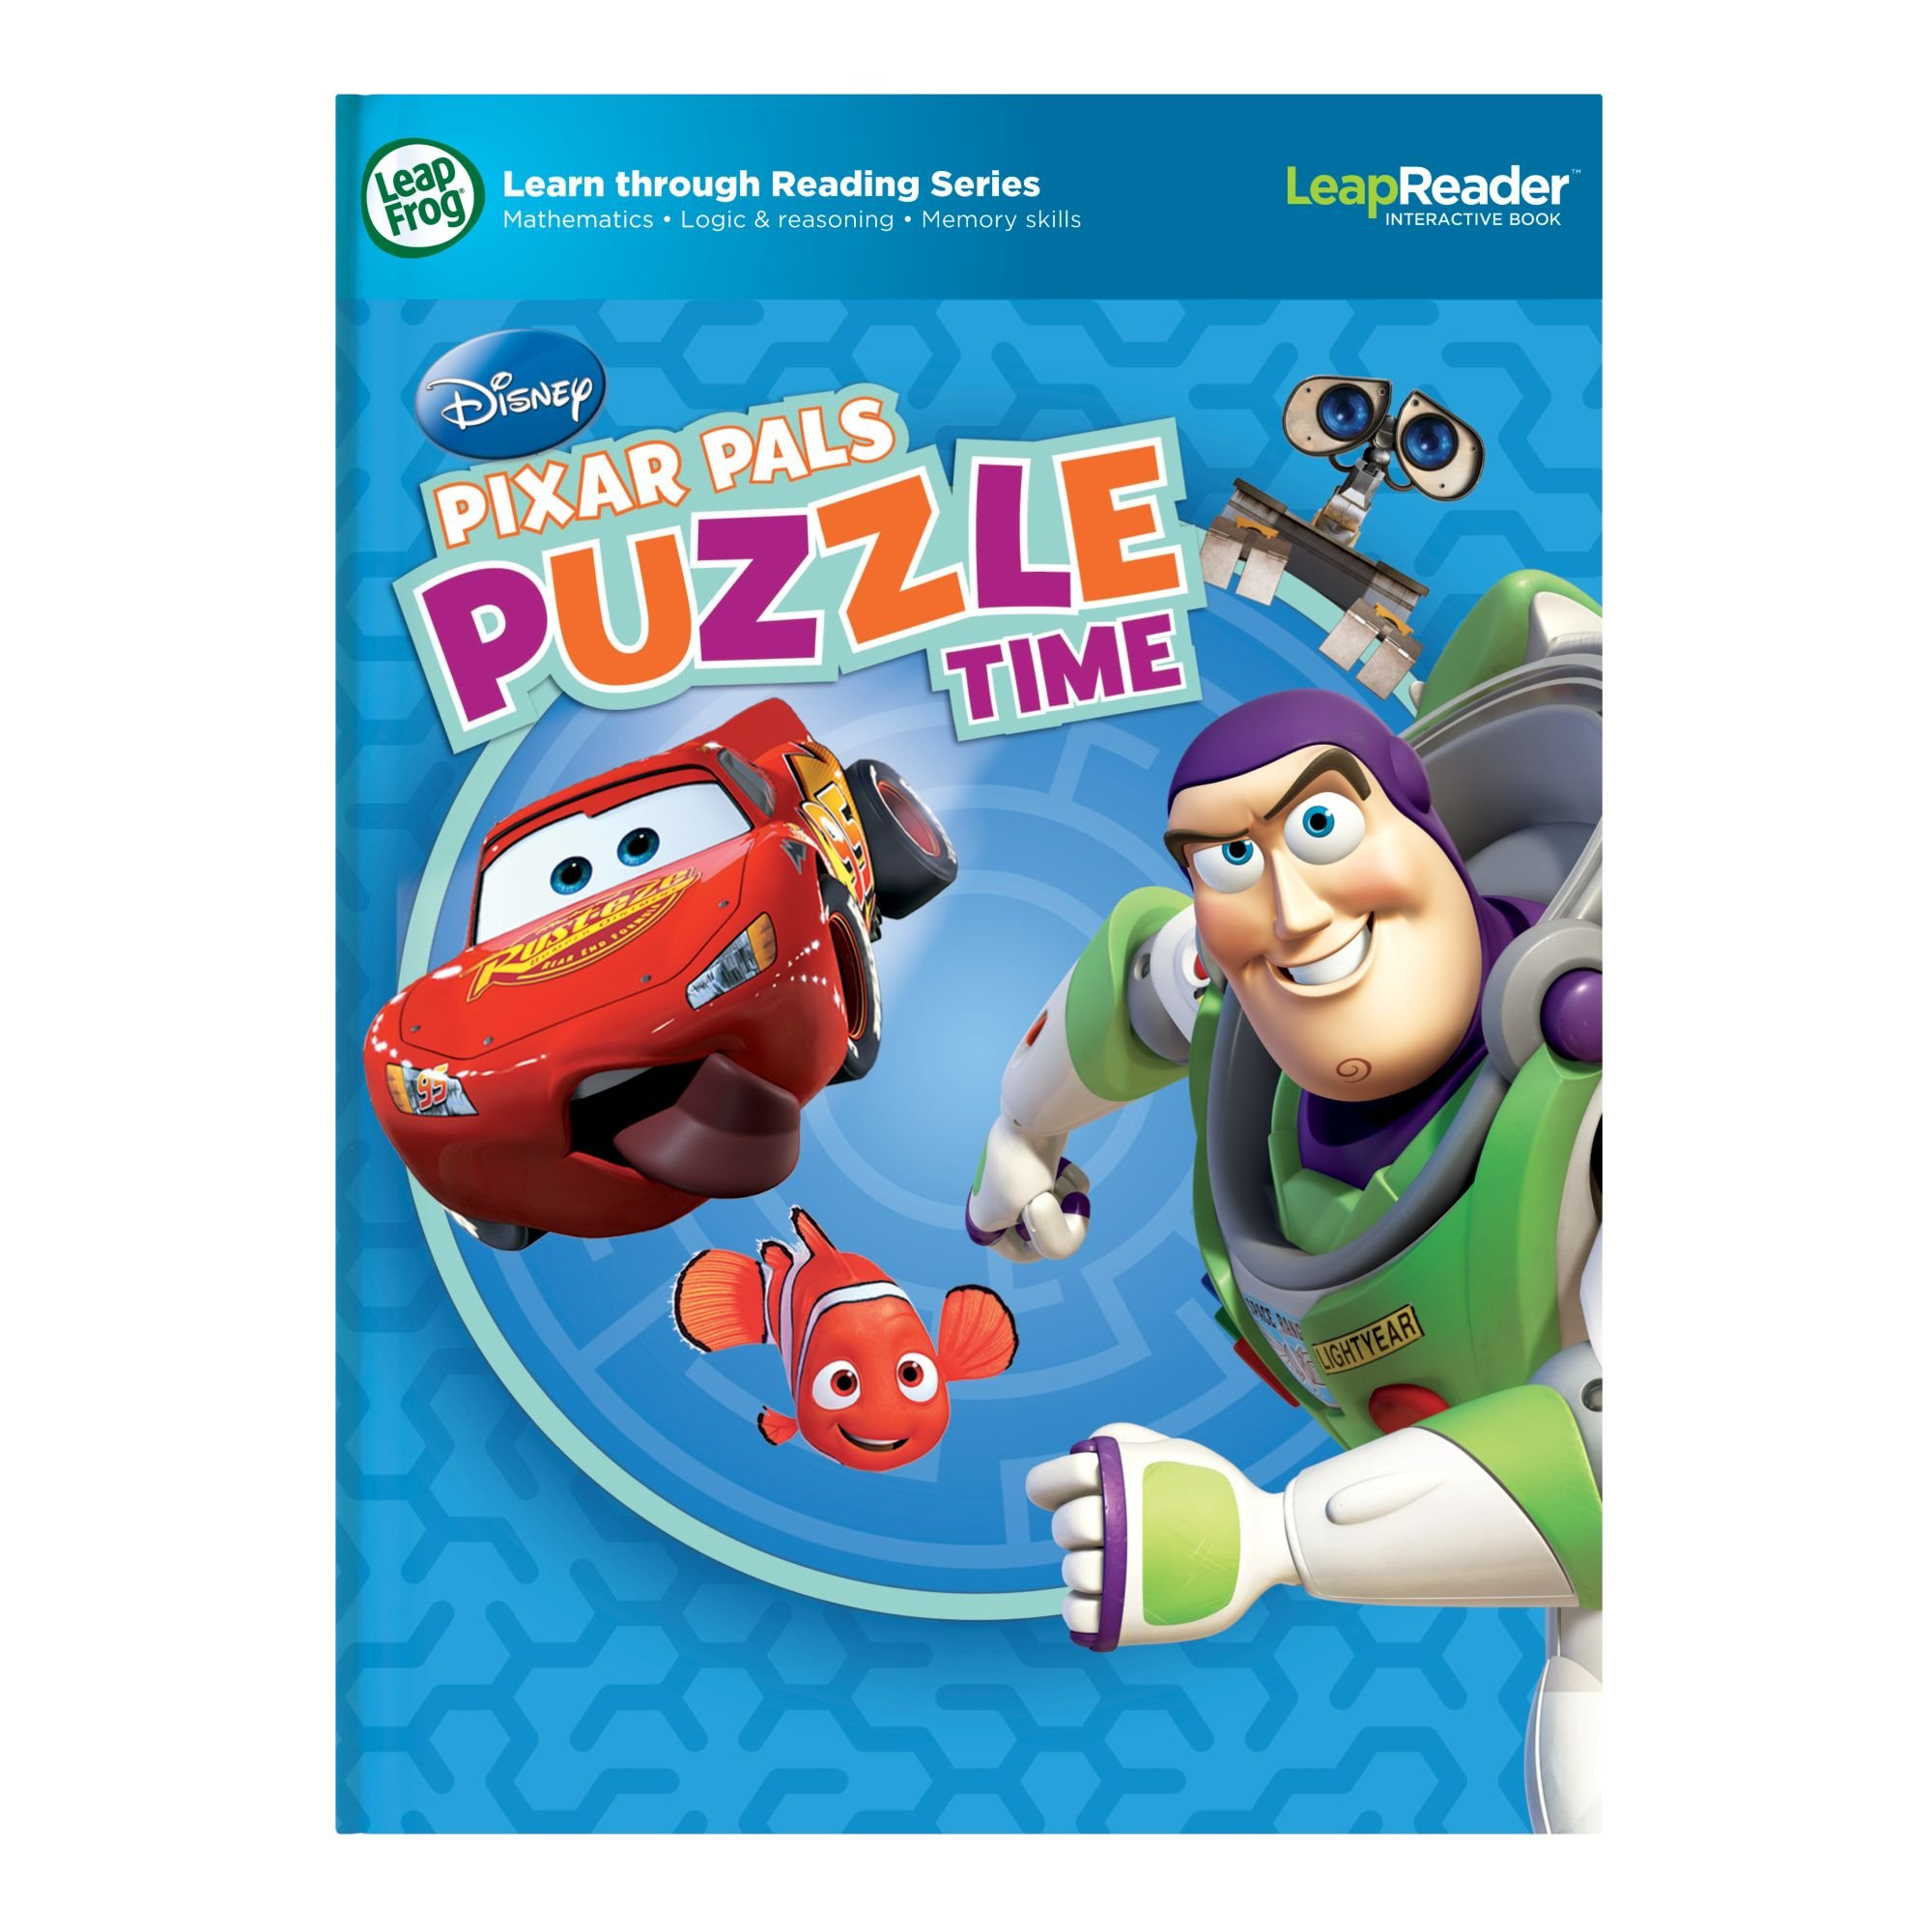 LeapFrog Tag Game Book: Pixar Pals Puzzle Time by LeapFrog (Image #8)